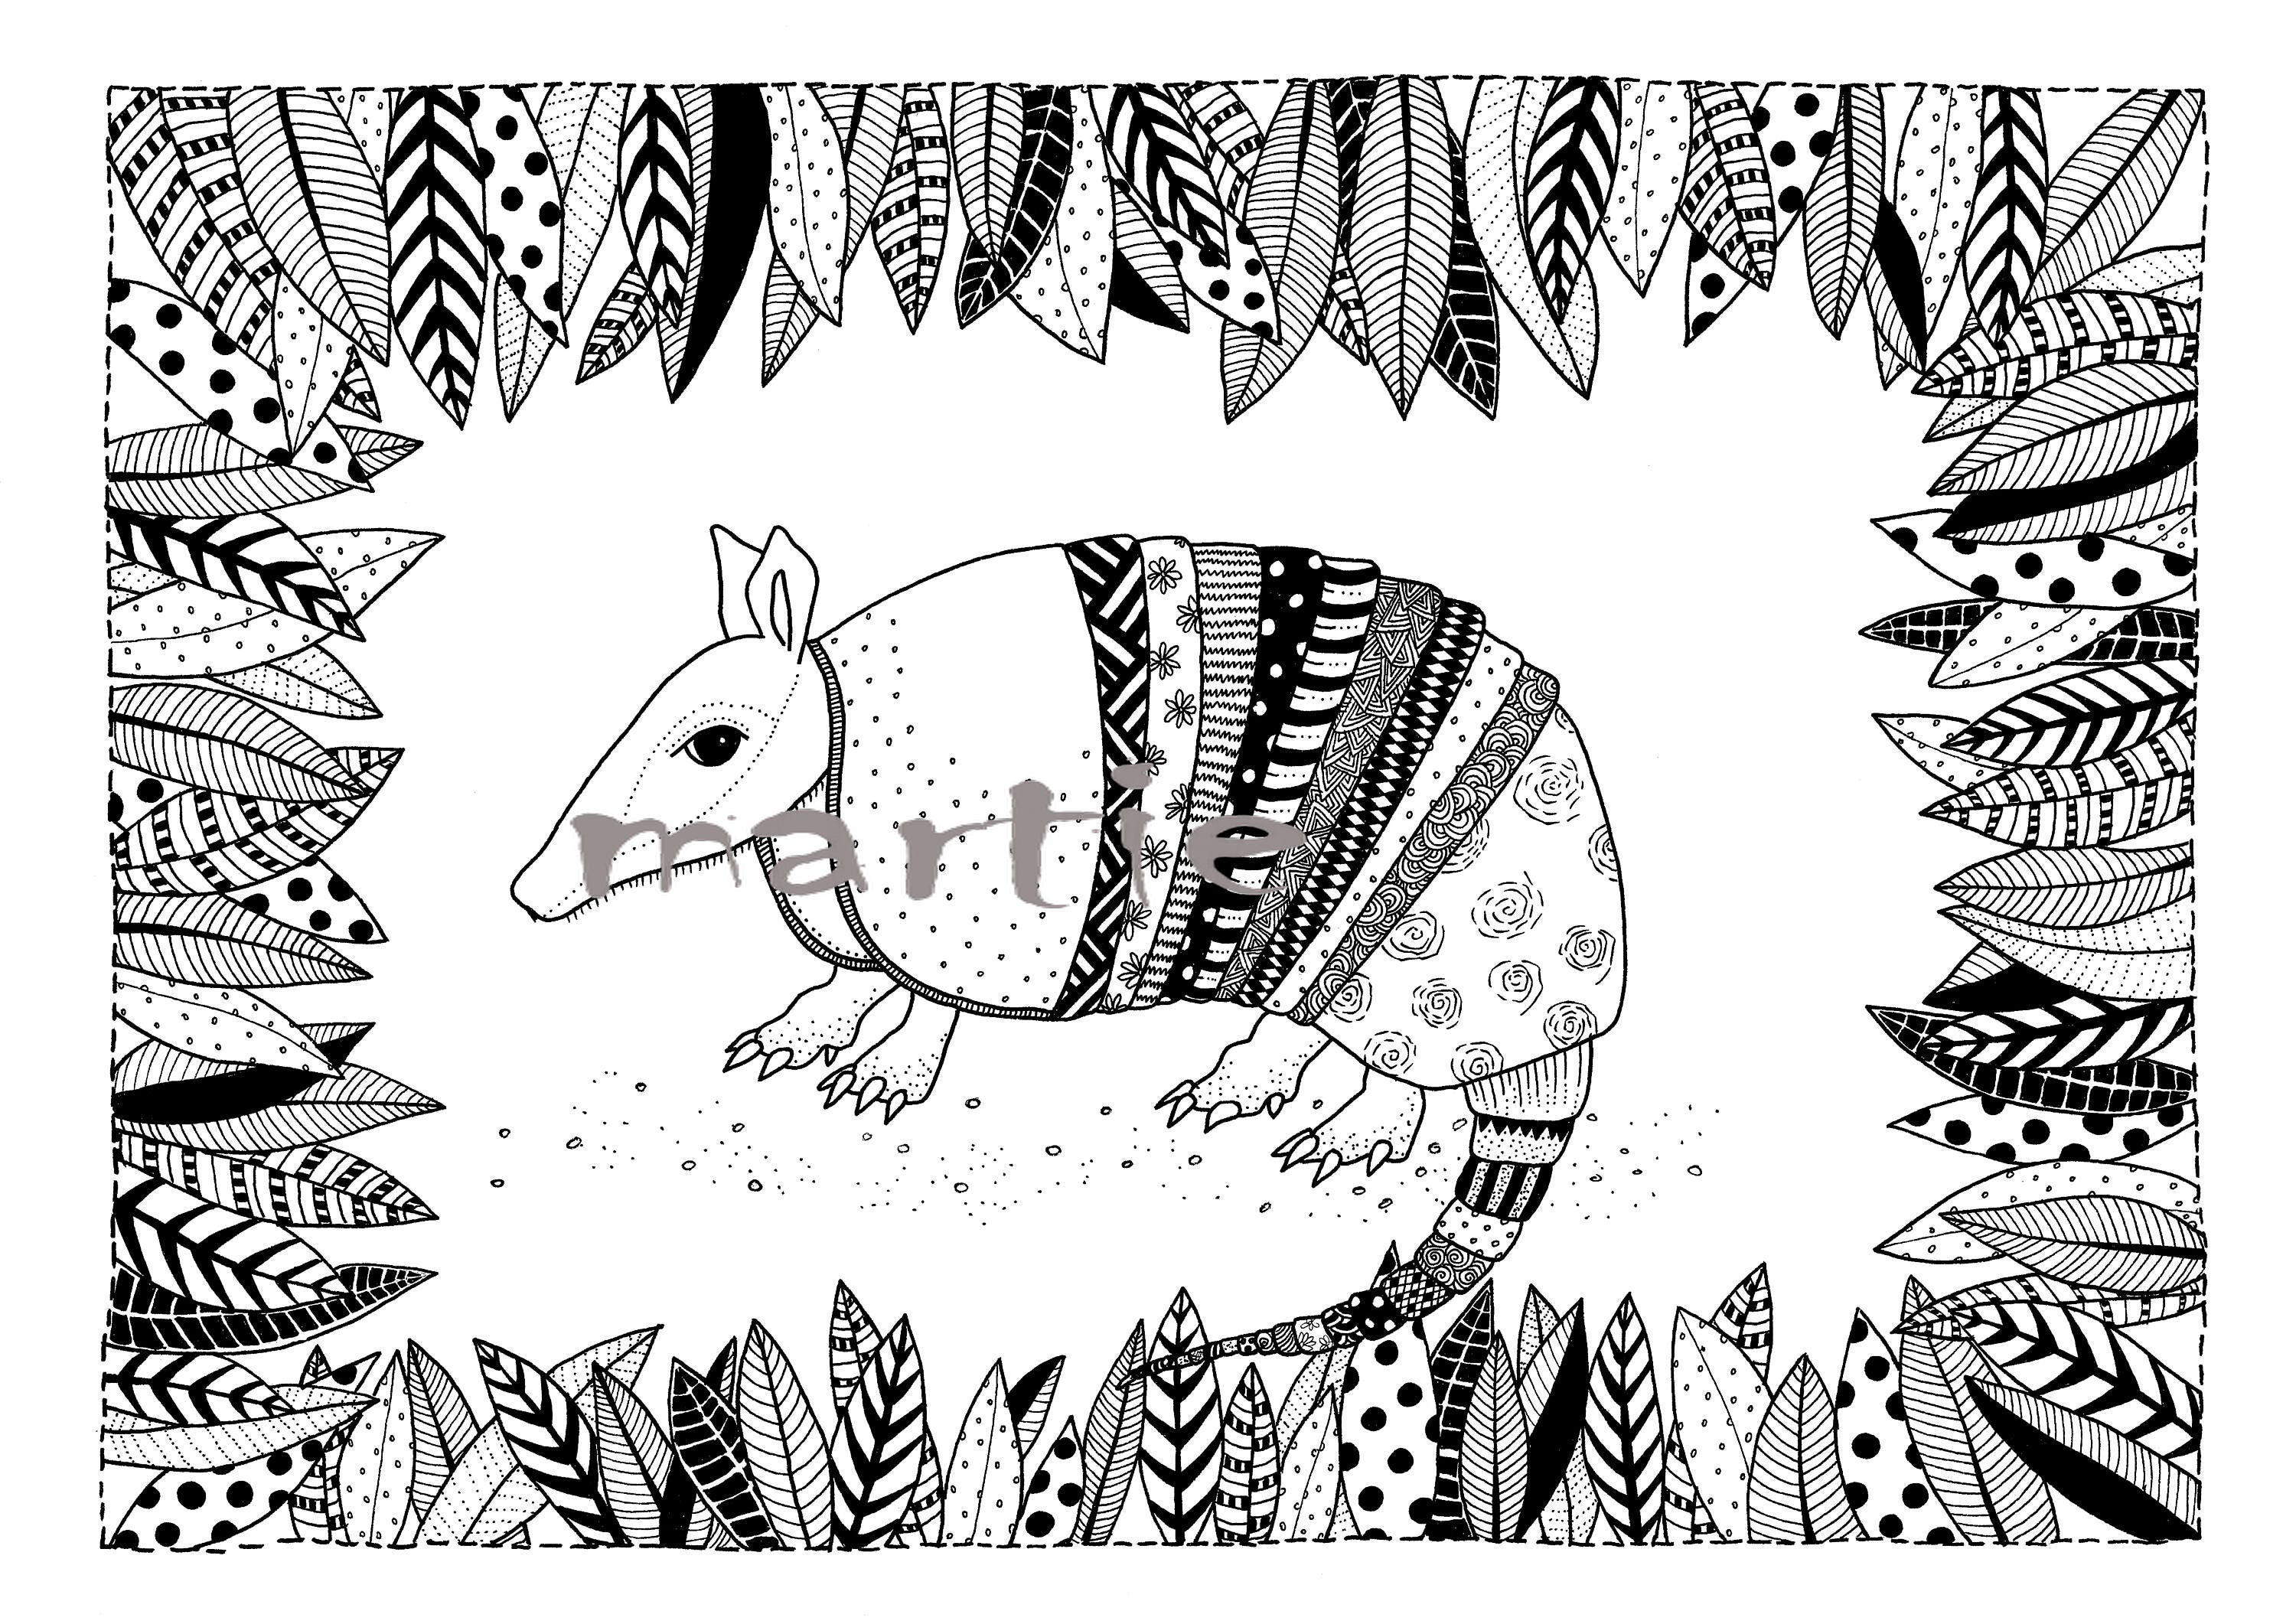 Armadillo - Colouring Page - Adult Colouring Page - Adult Coloring ...